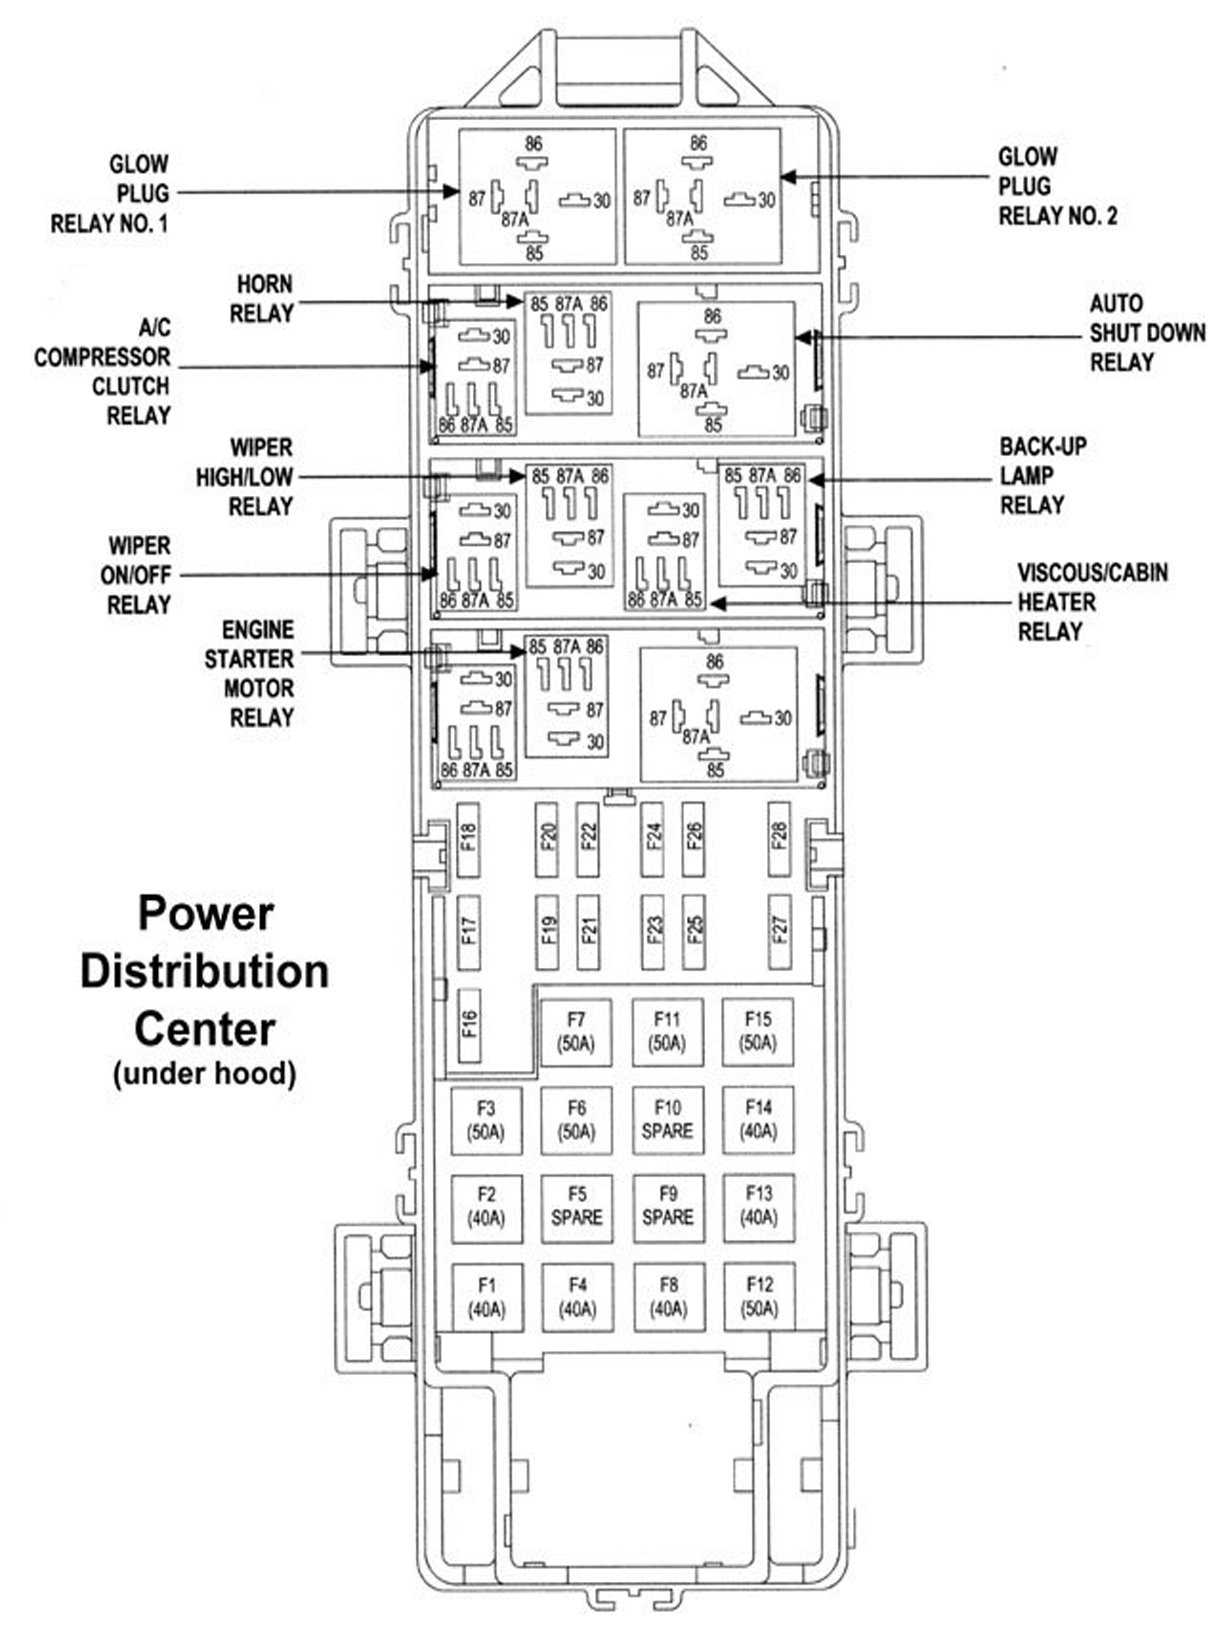 DIAGRAM] 97 Jeep Grand Cherokee Fuse Box Diagram FULL Version HD Quality Box  Diagram - MFGDATABASE.CONSERVATOIRE-CHANTERIE.FRDatabase diagramming tool